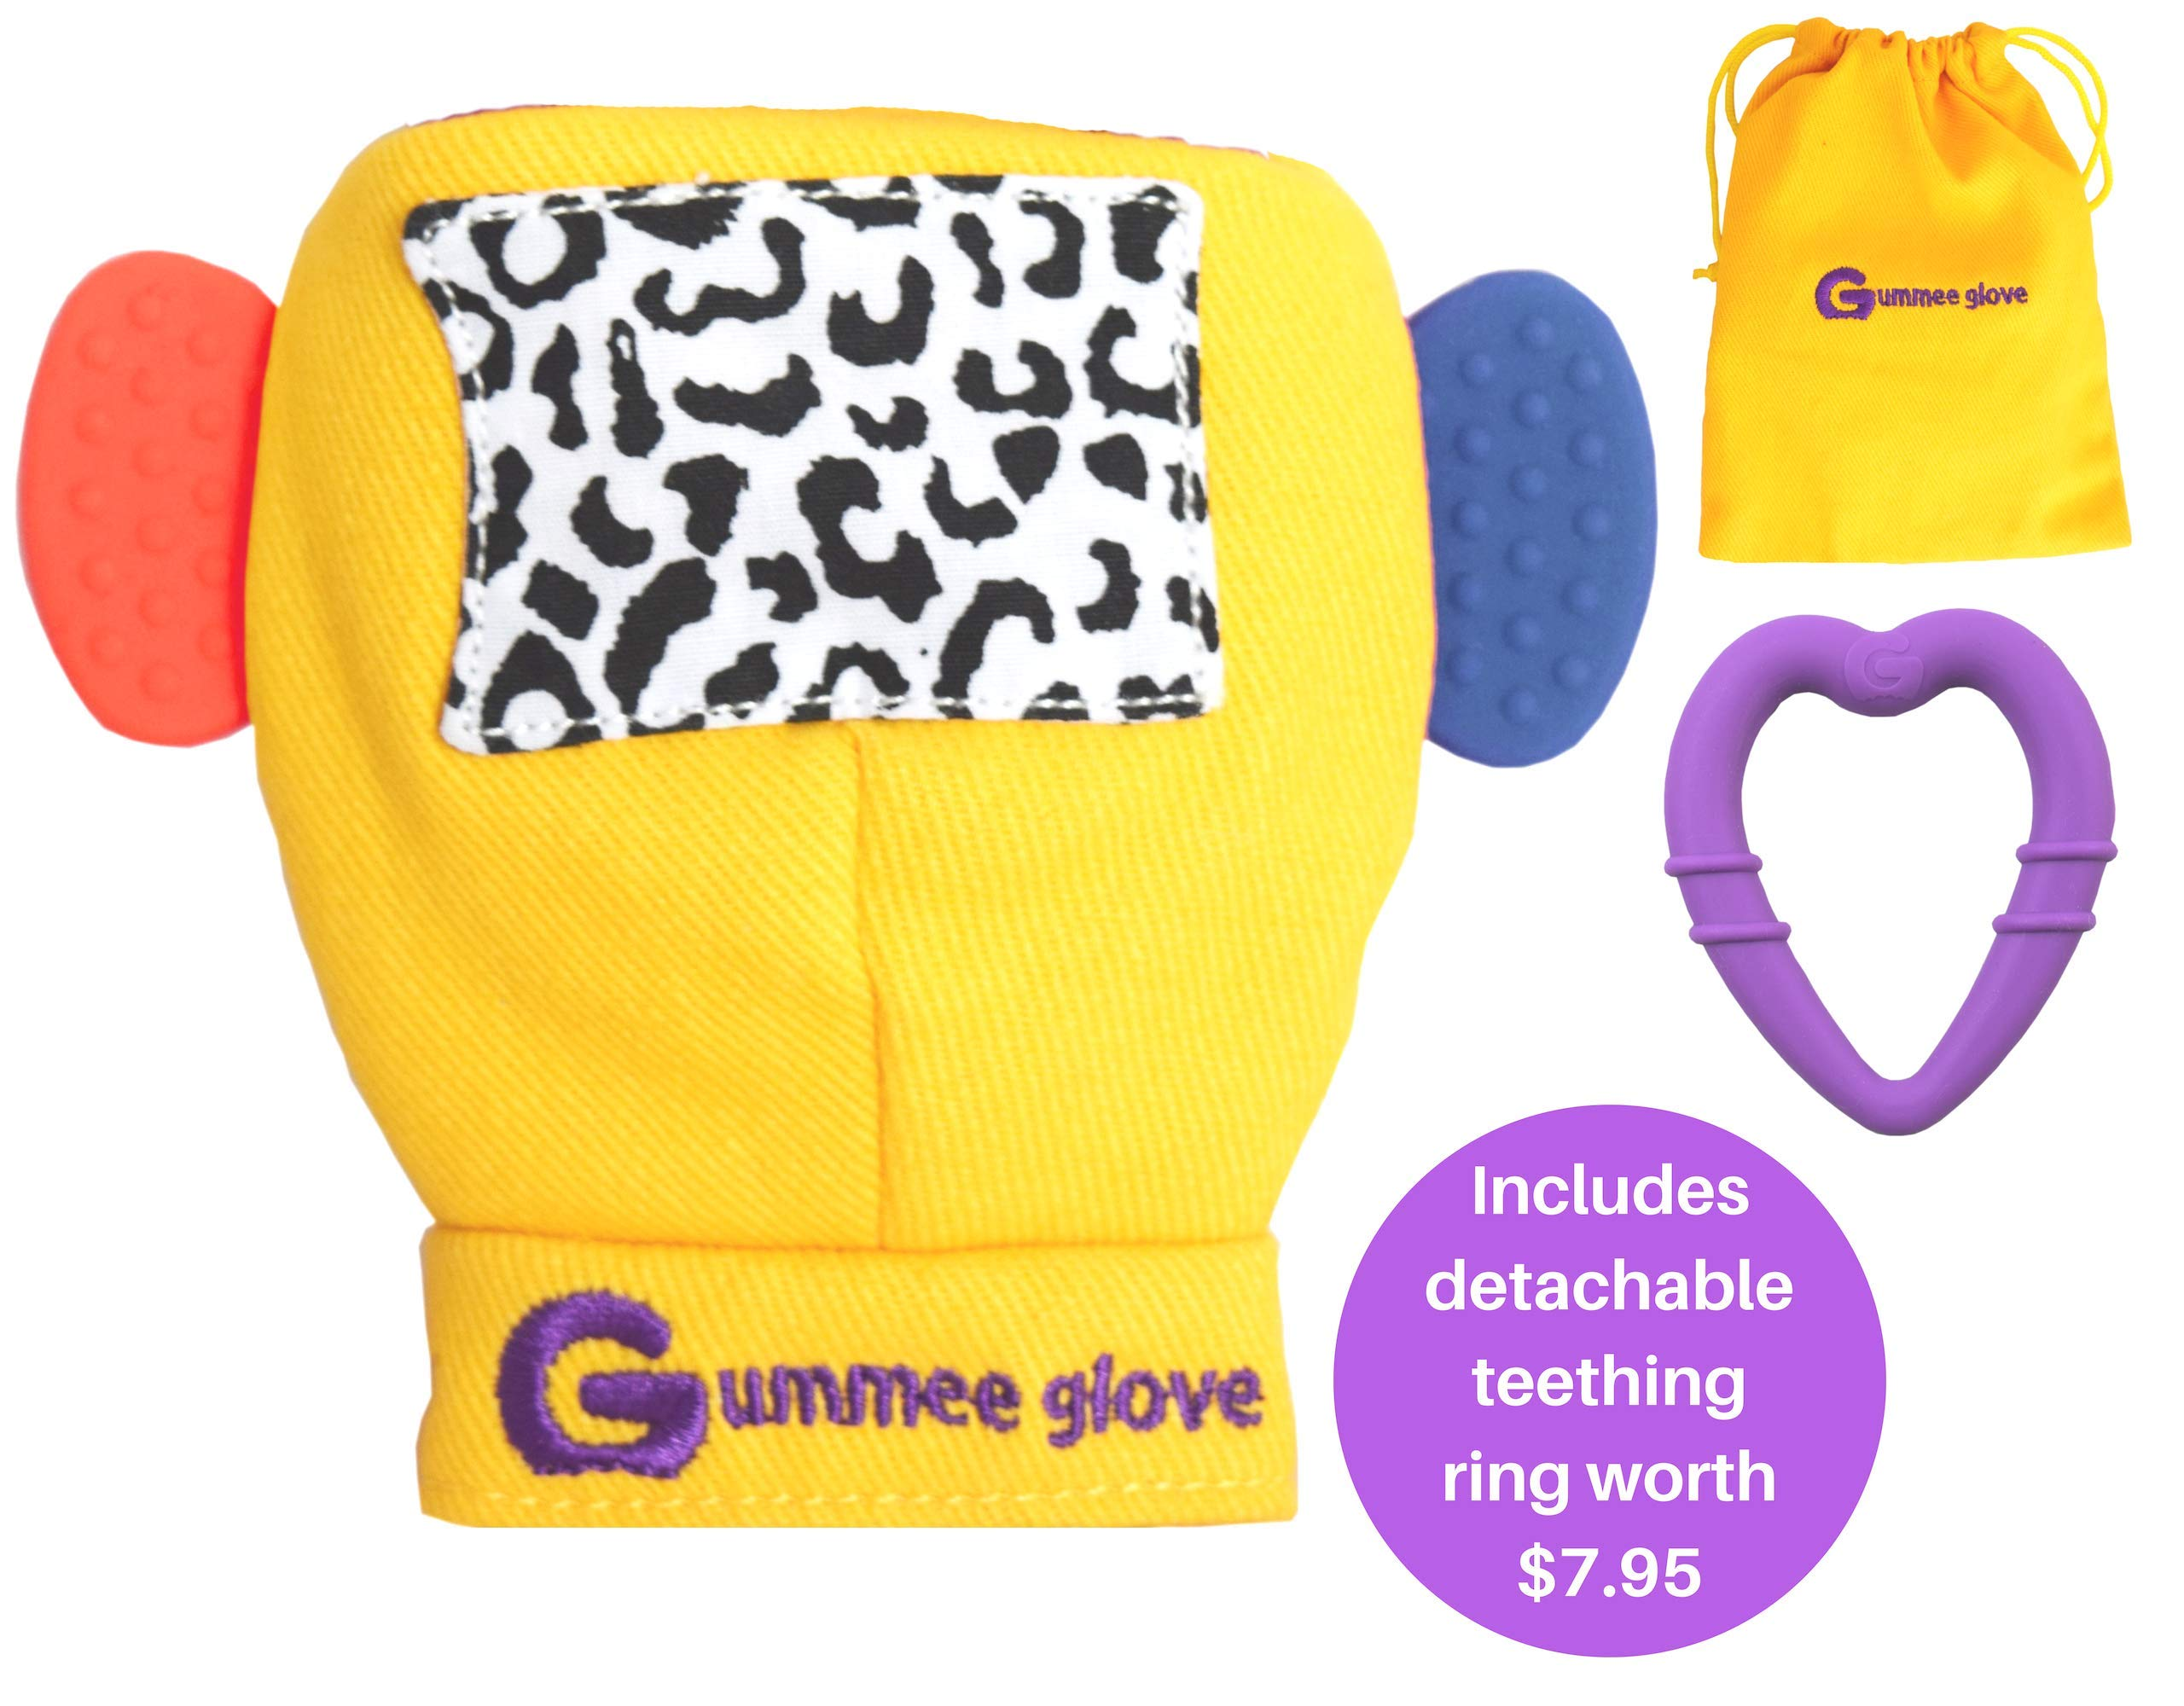 Gummee Glove Award Winning Baby Teething Mitten Premium Quality 100% Cotton Includes Detachable Teether Ring and Travel Bag - 3 Months + Yellow - Undroppable - Soothe Babies Painful Gums Naturally by Gummee